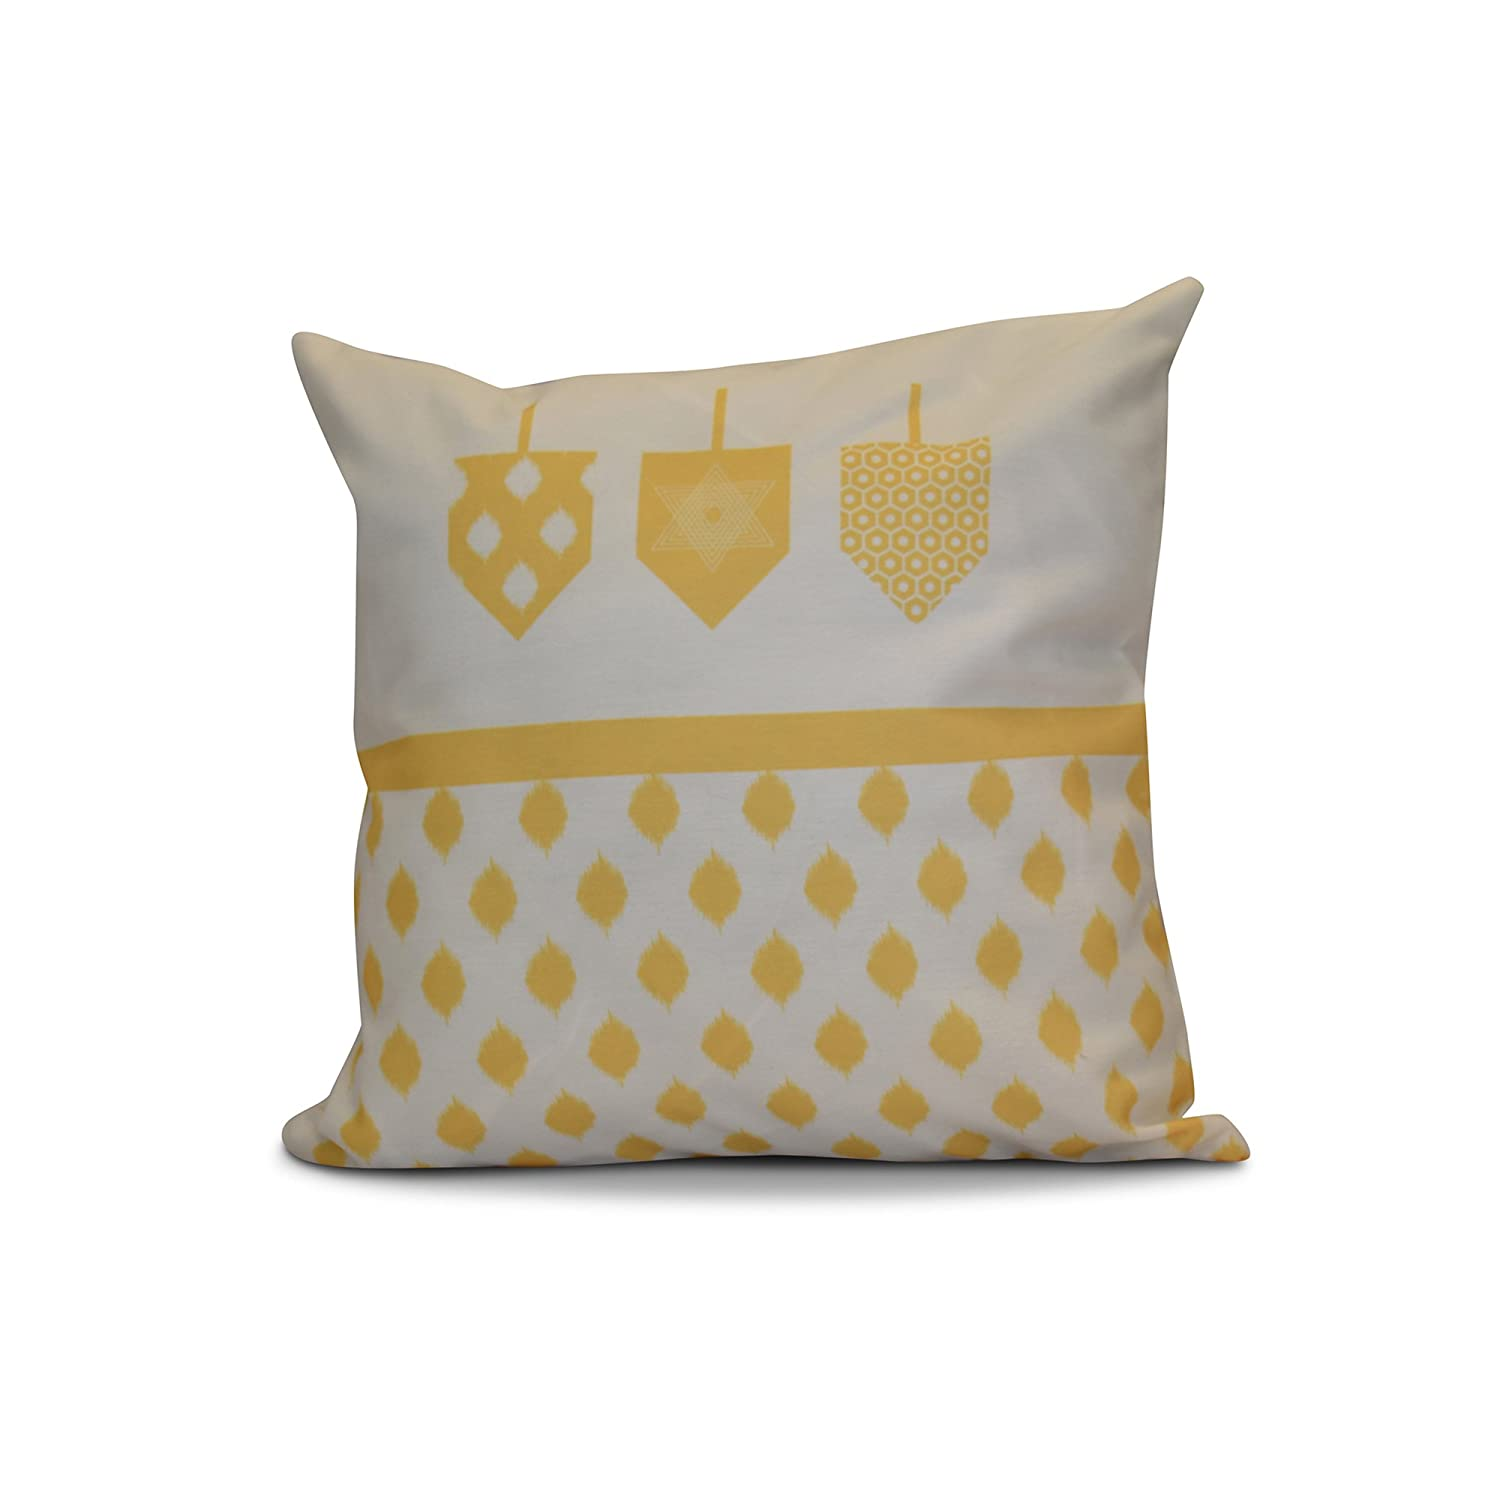 E by design PGHN570YE9-20 20 x 20 inch, Decorative Holiday Pillow, Geometric, Yellow